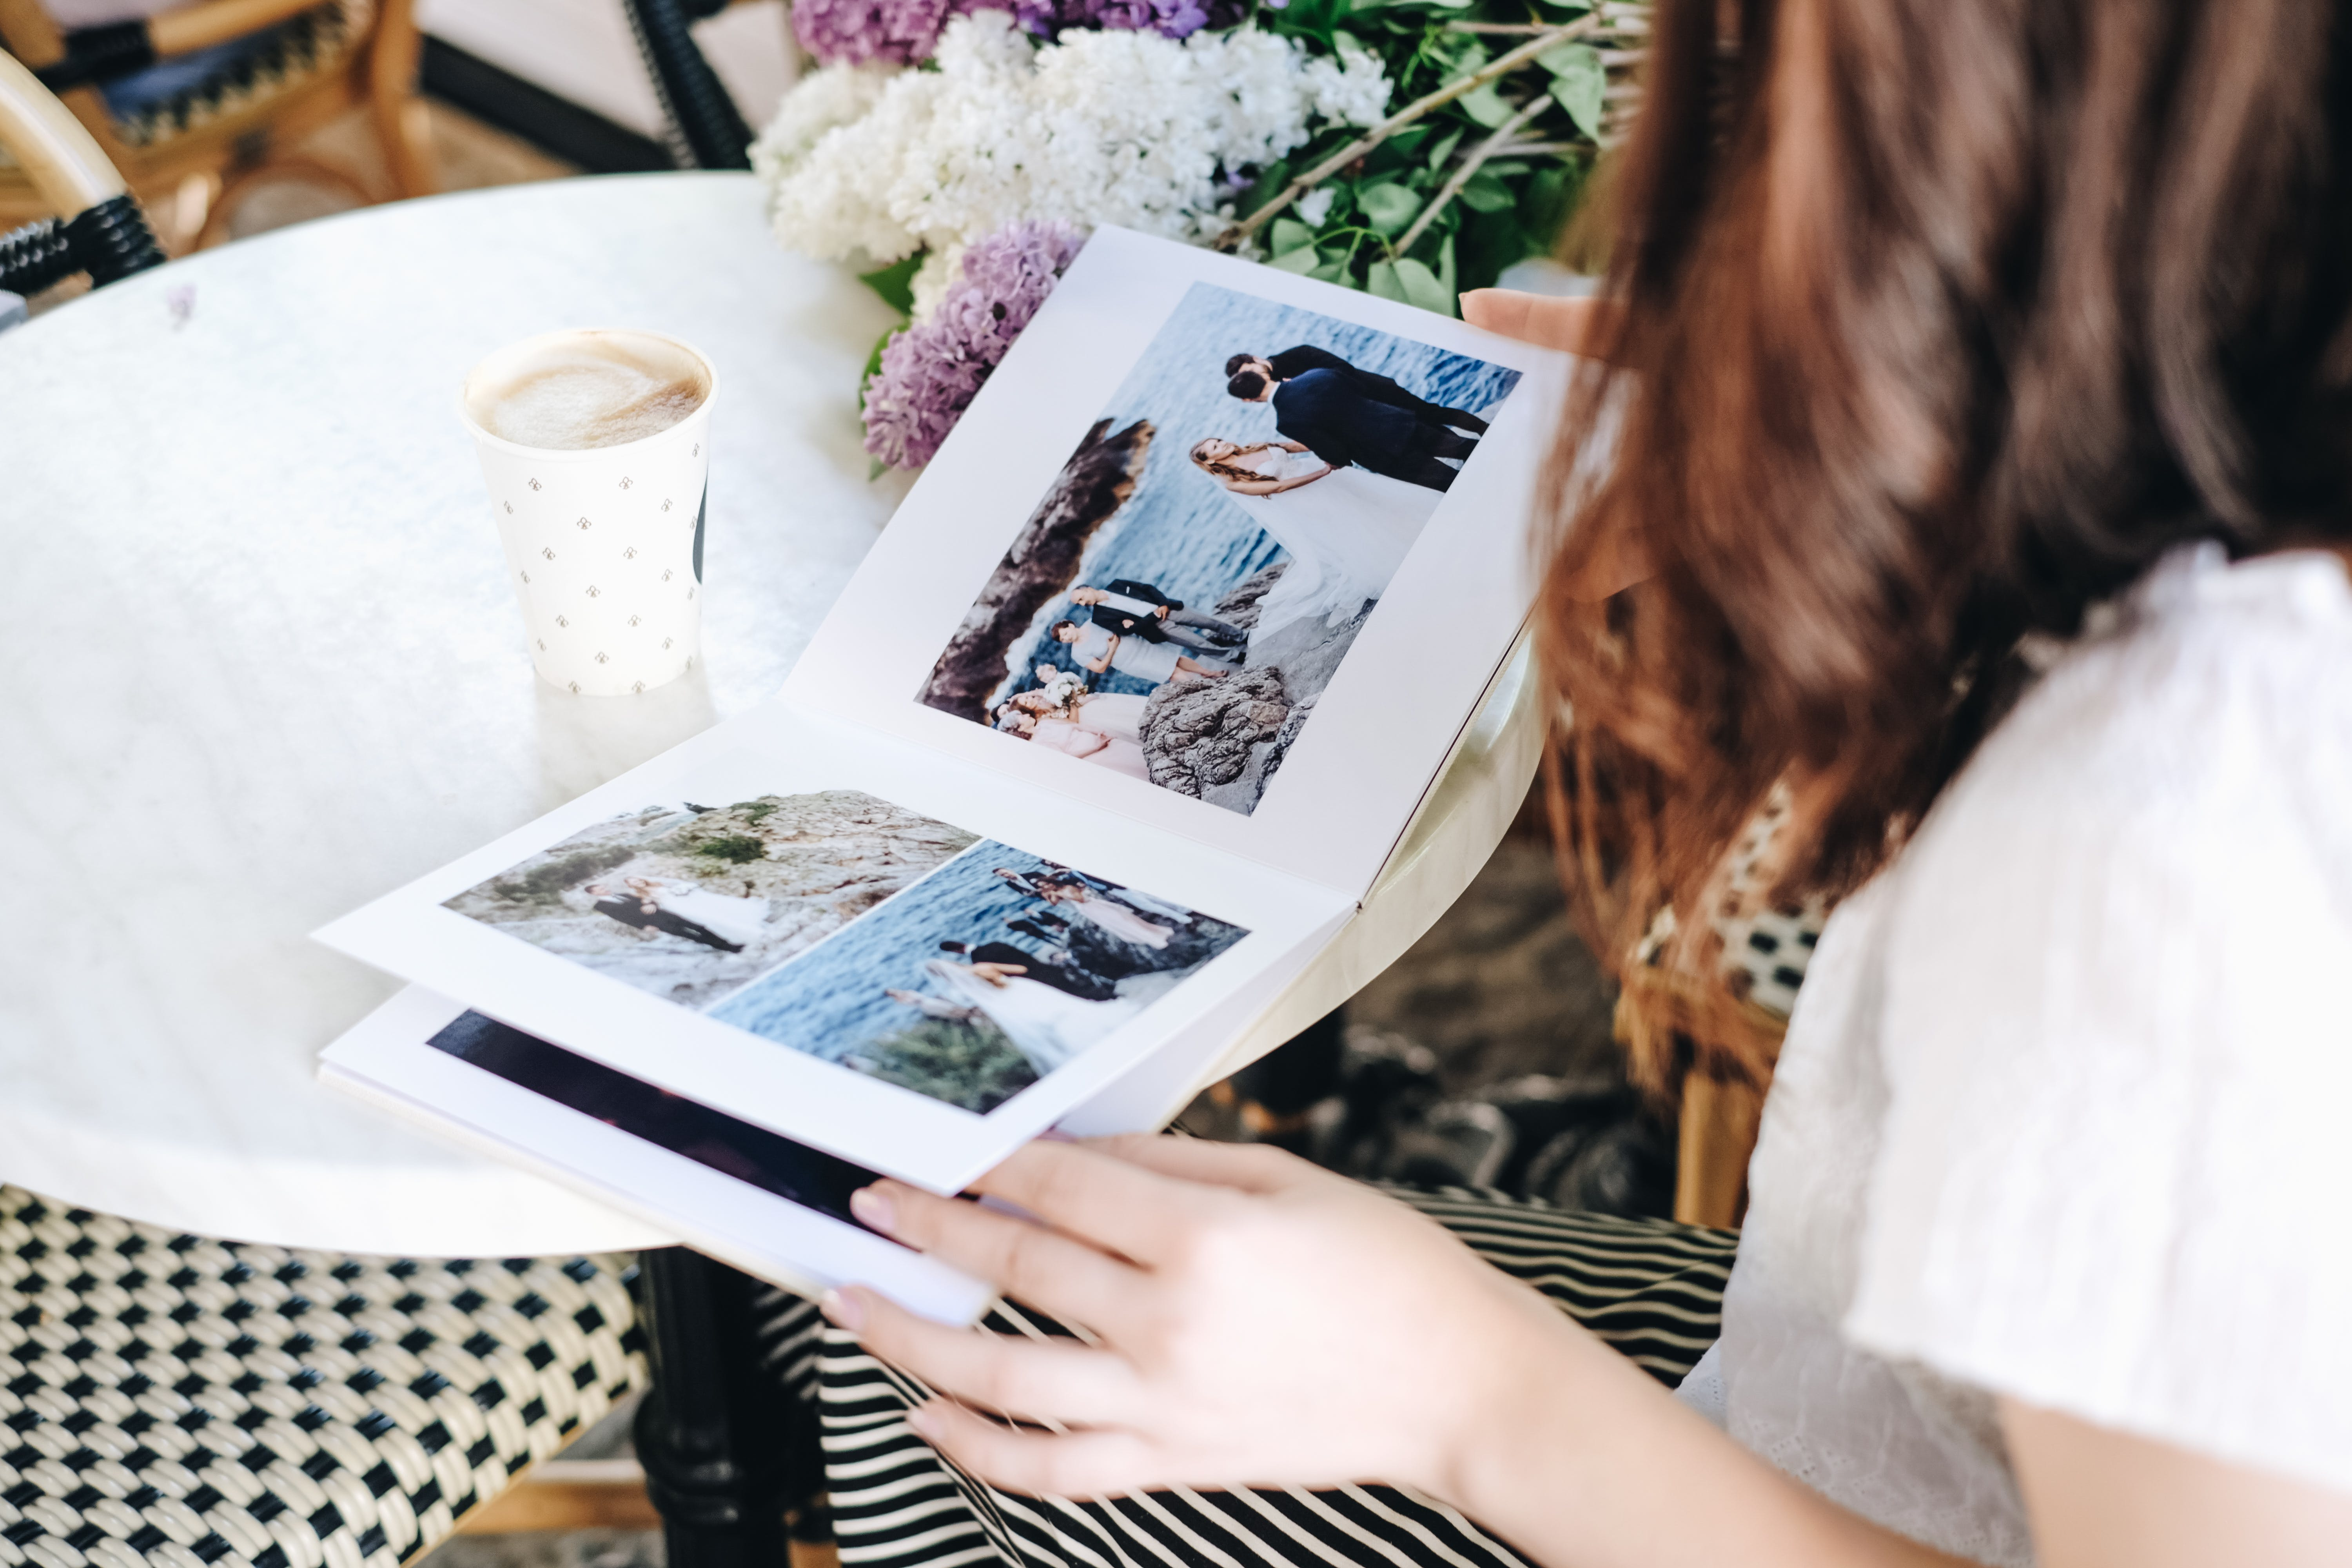 Our tips for creating the perfect sample album for your photography business